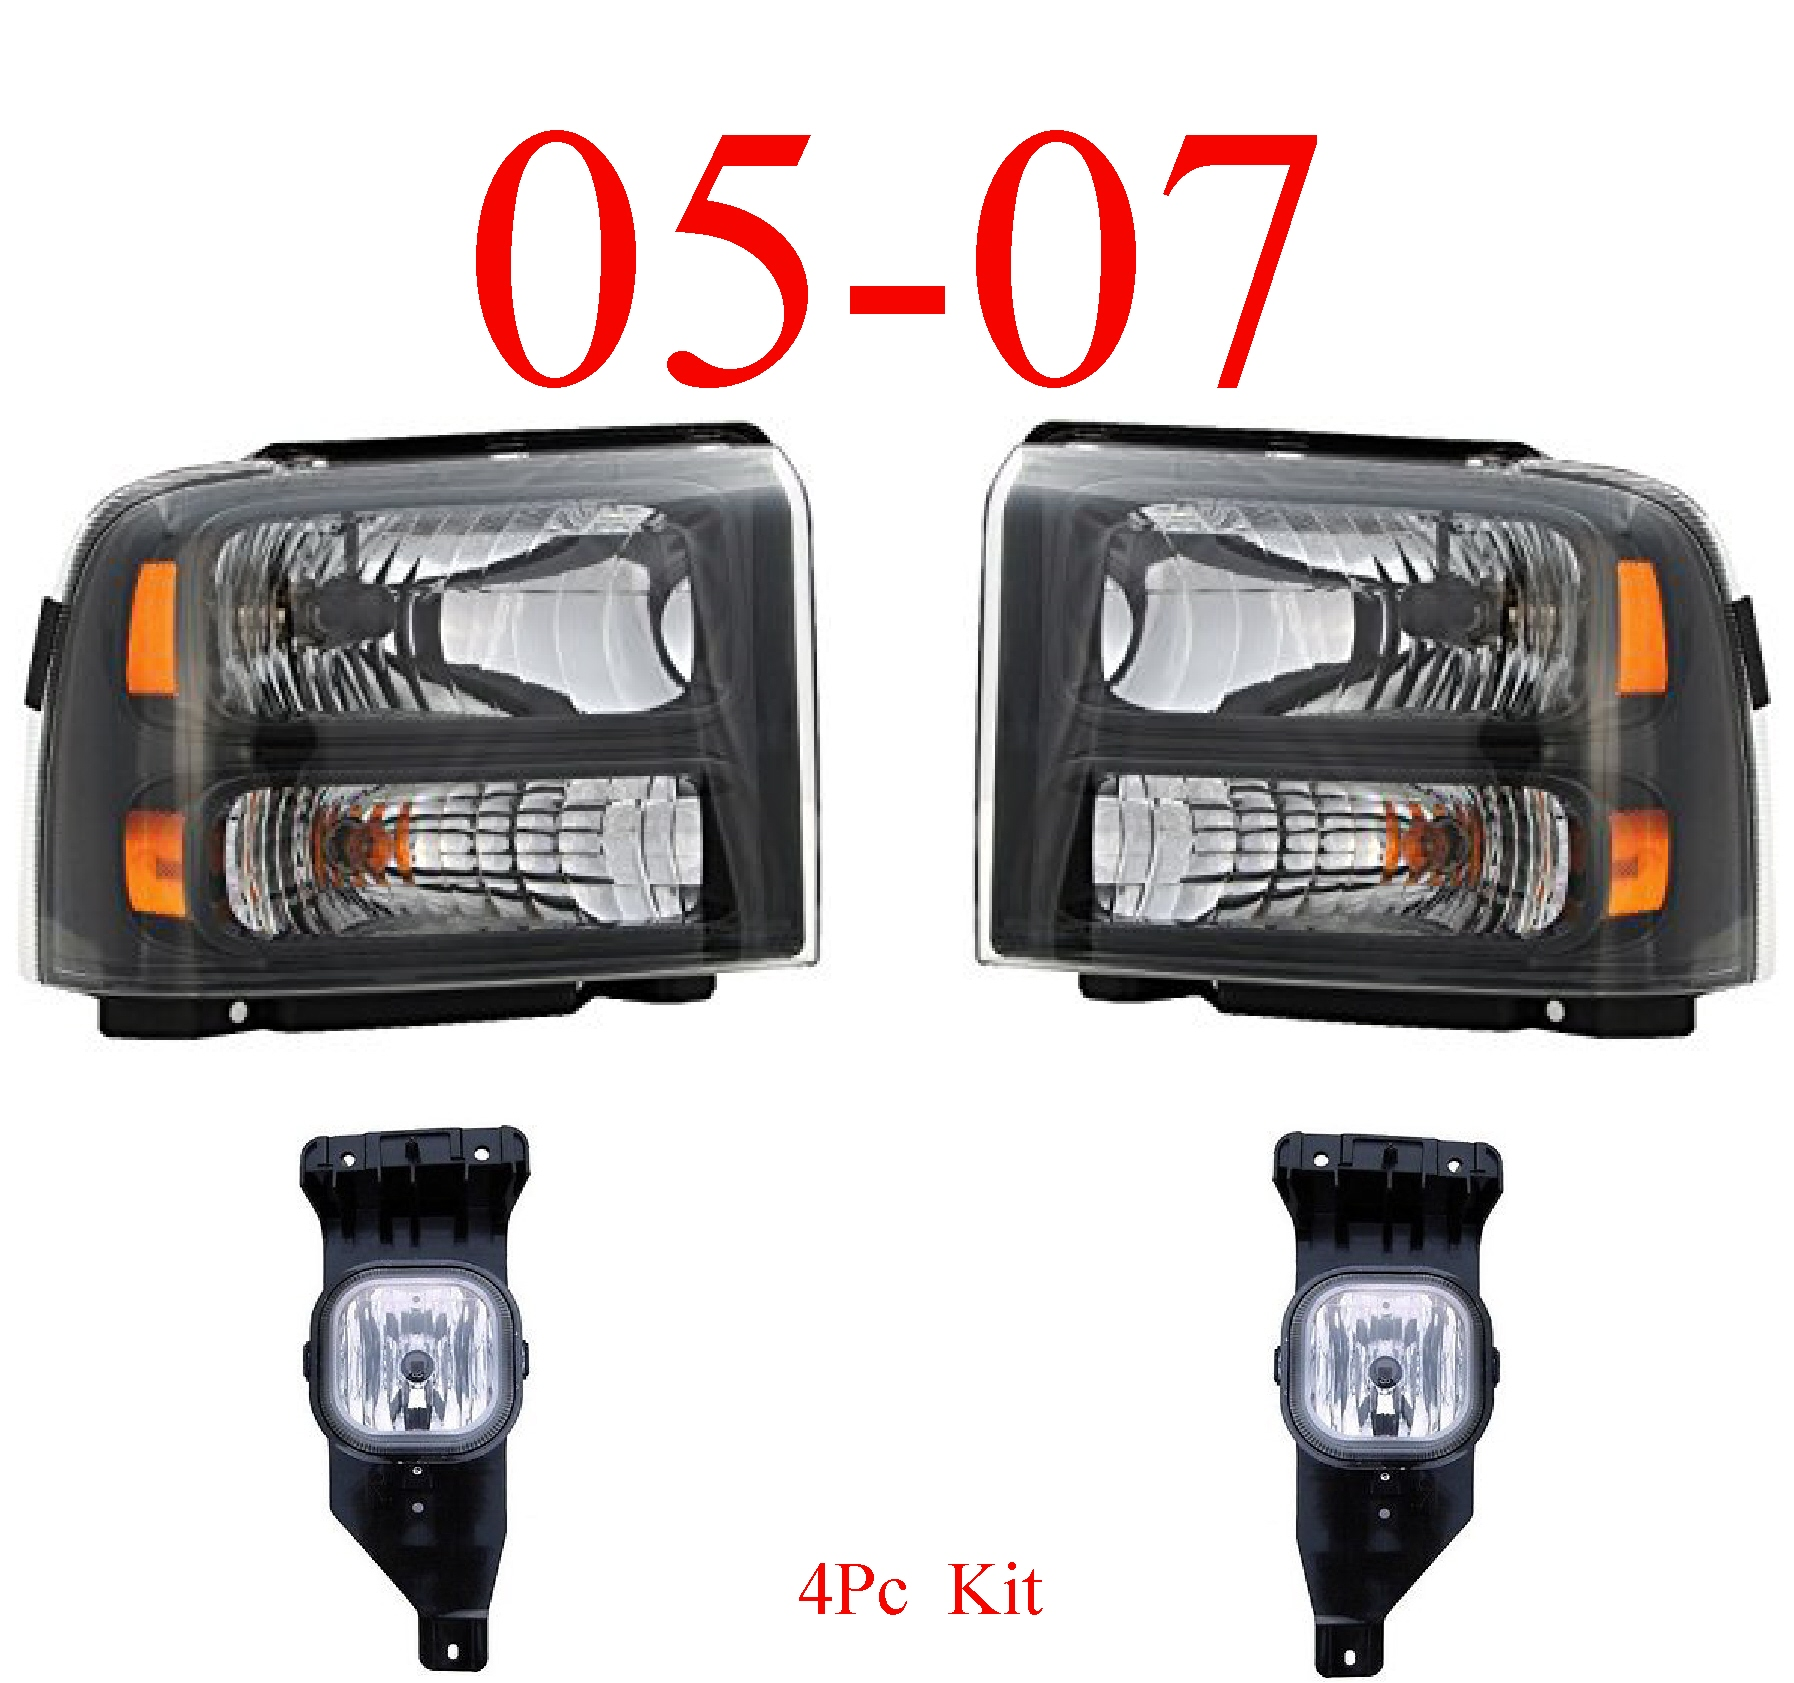 05 Ford Excursion 4Pc Head Light & Fog Light Kit Harley Davidson